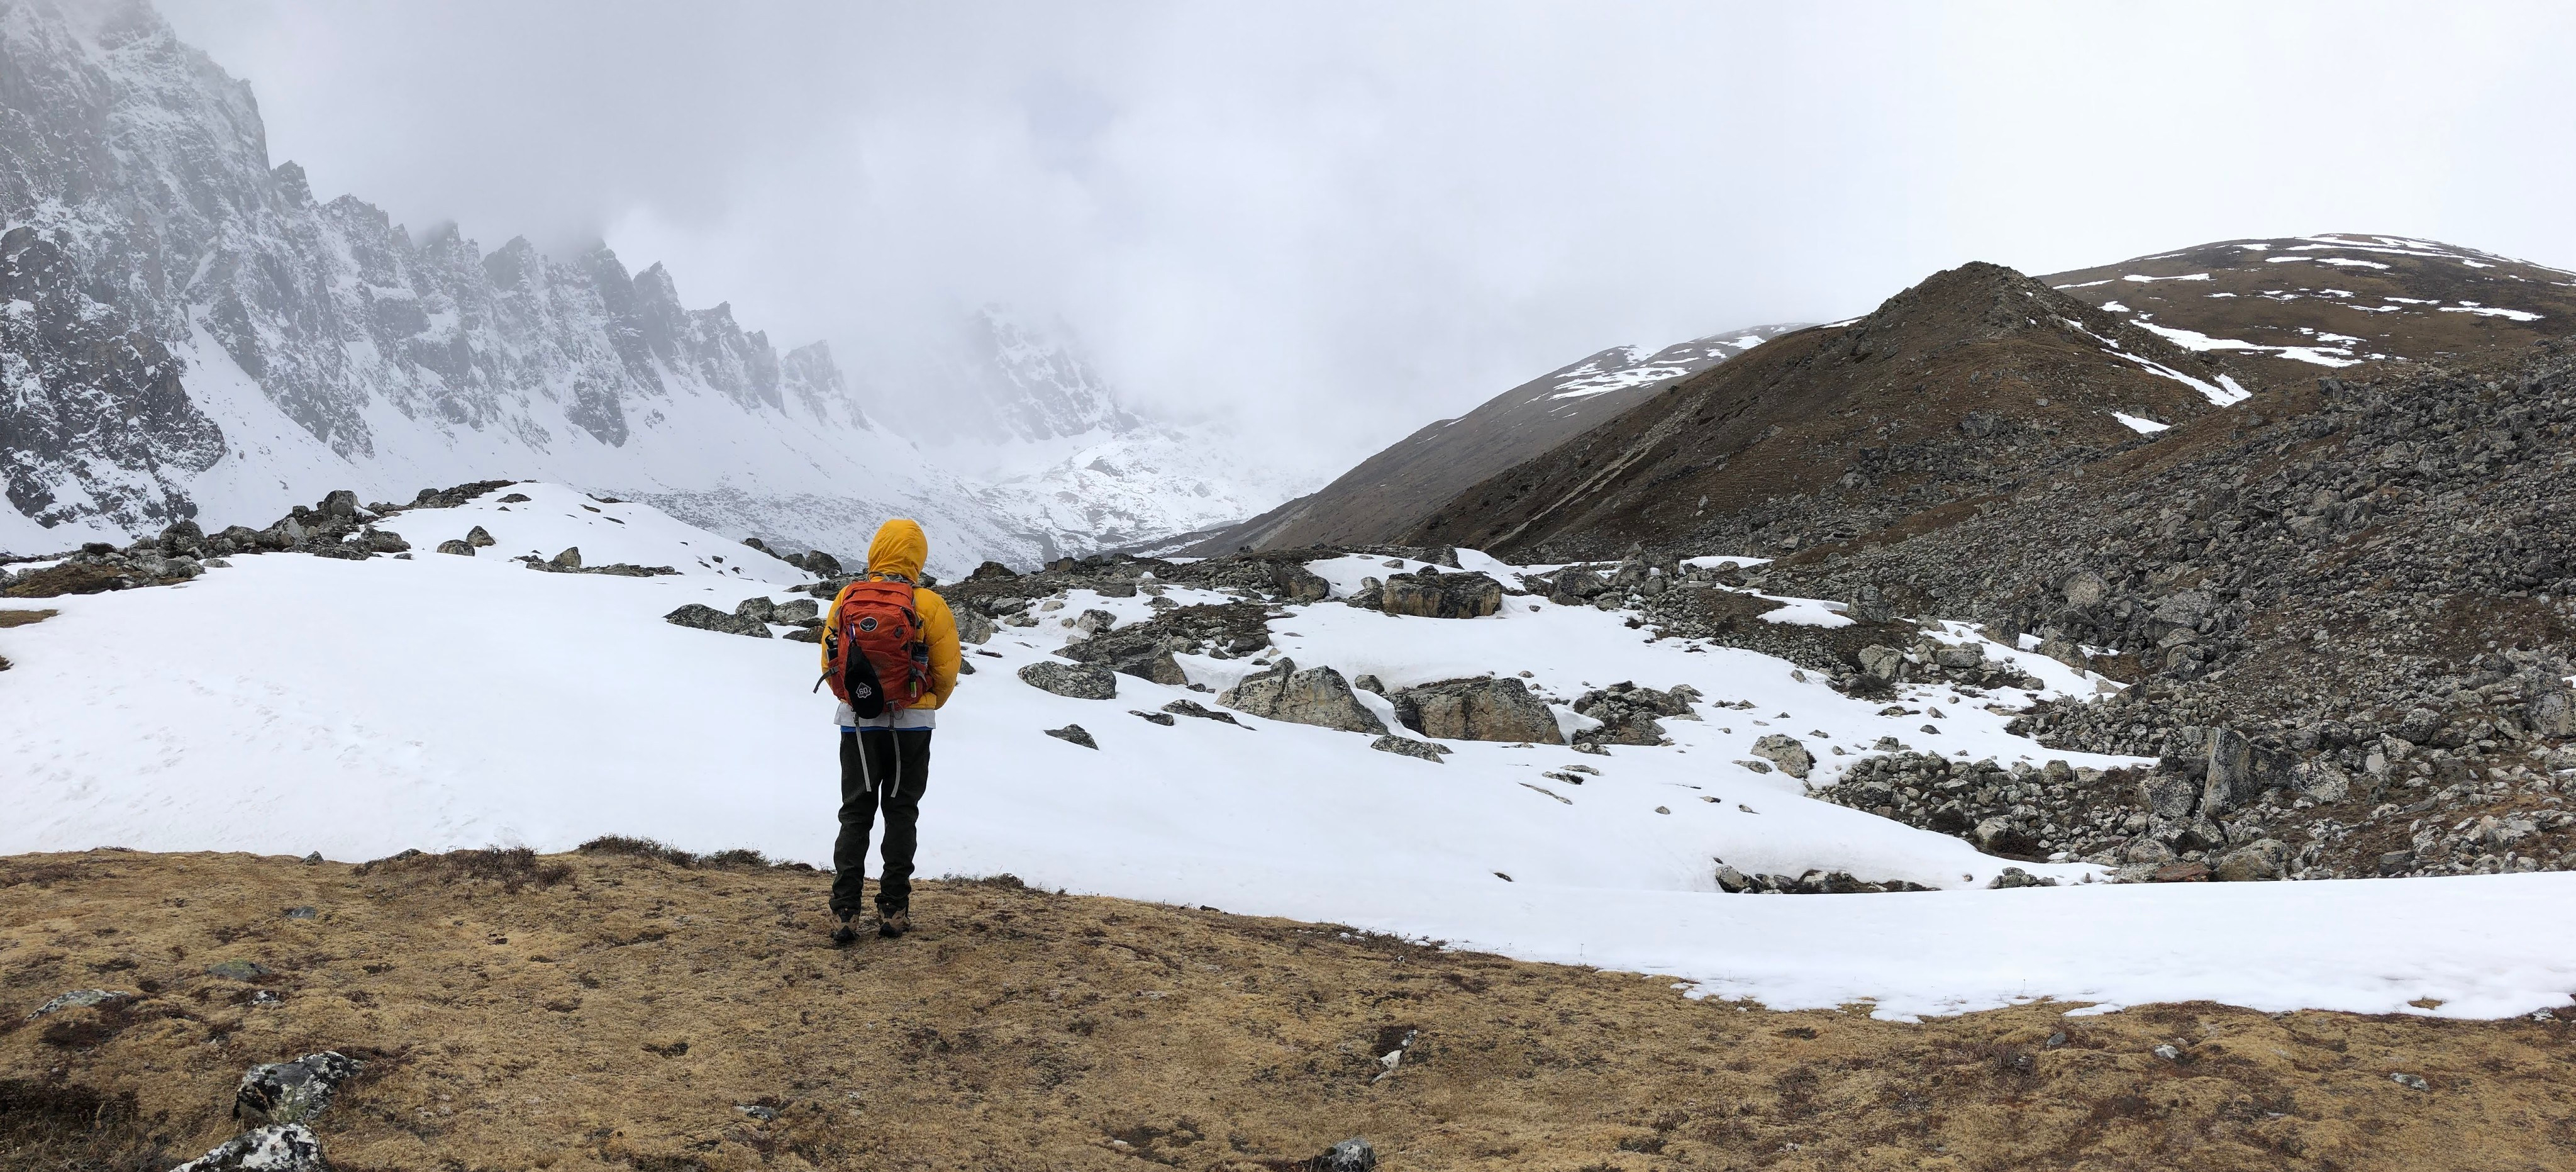 Gokyo, Day 10: Hike to the fourth and fifth lakes